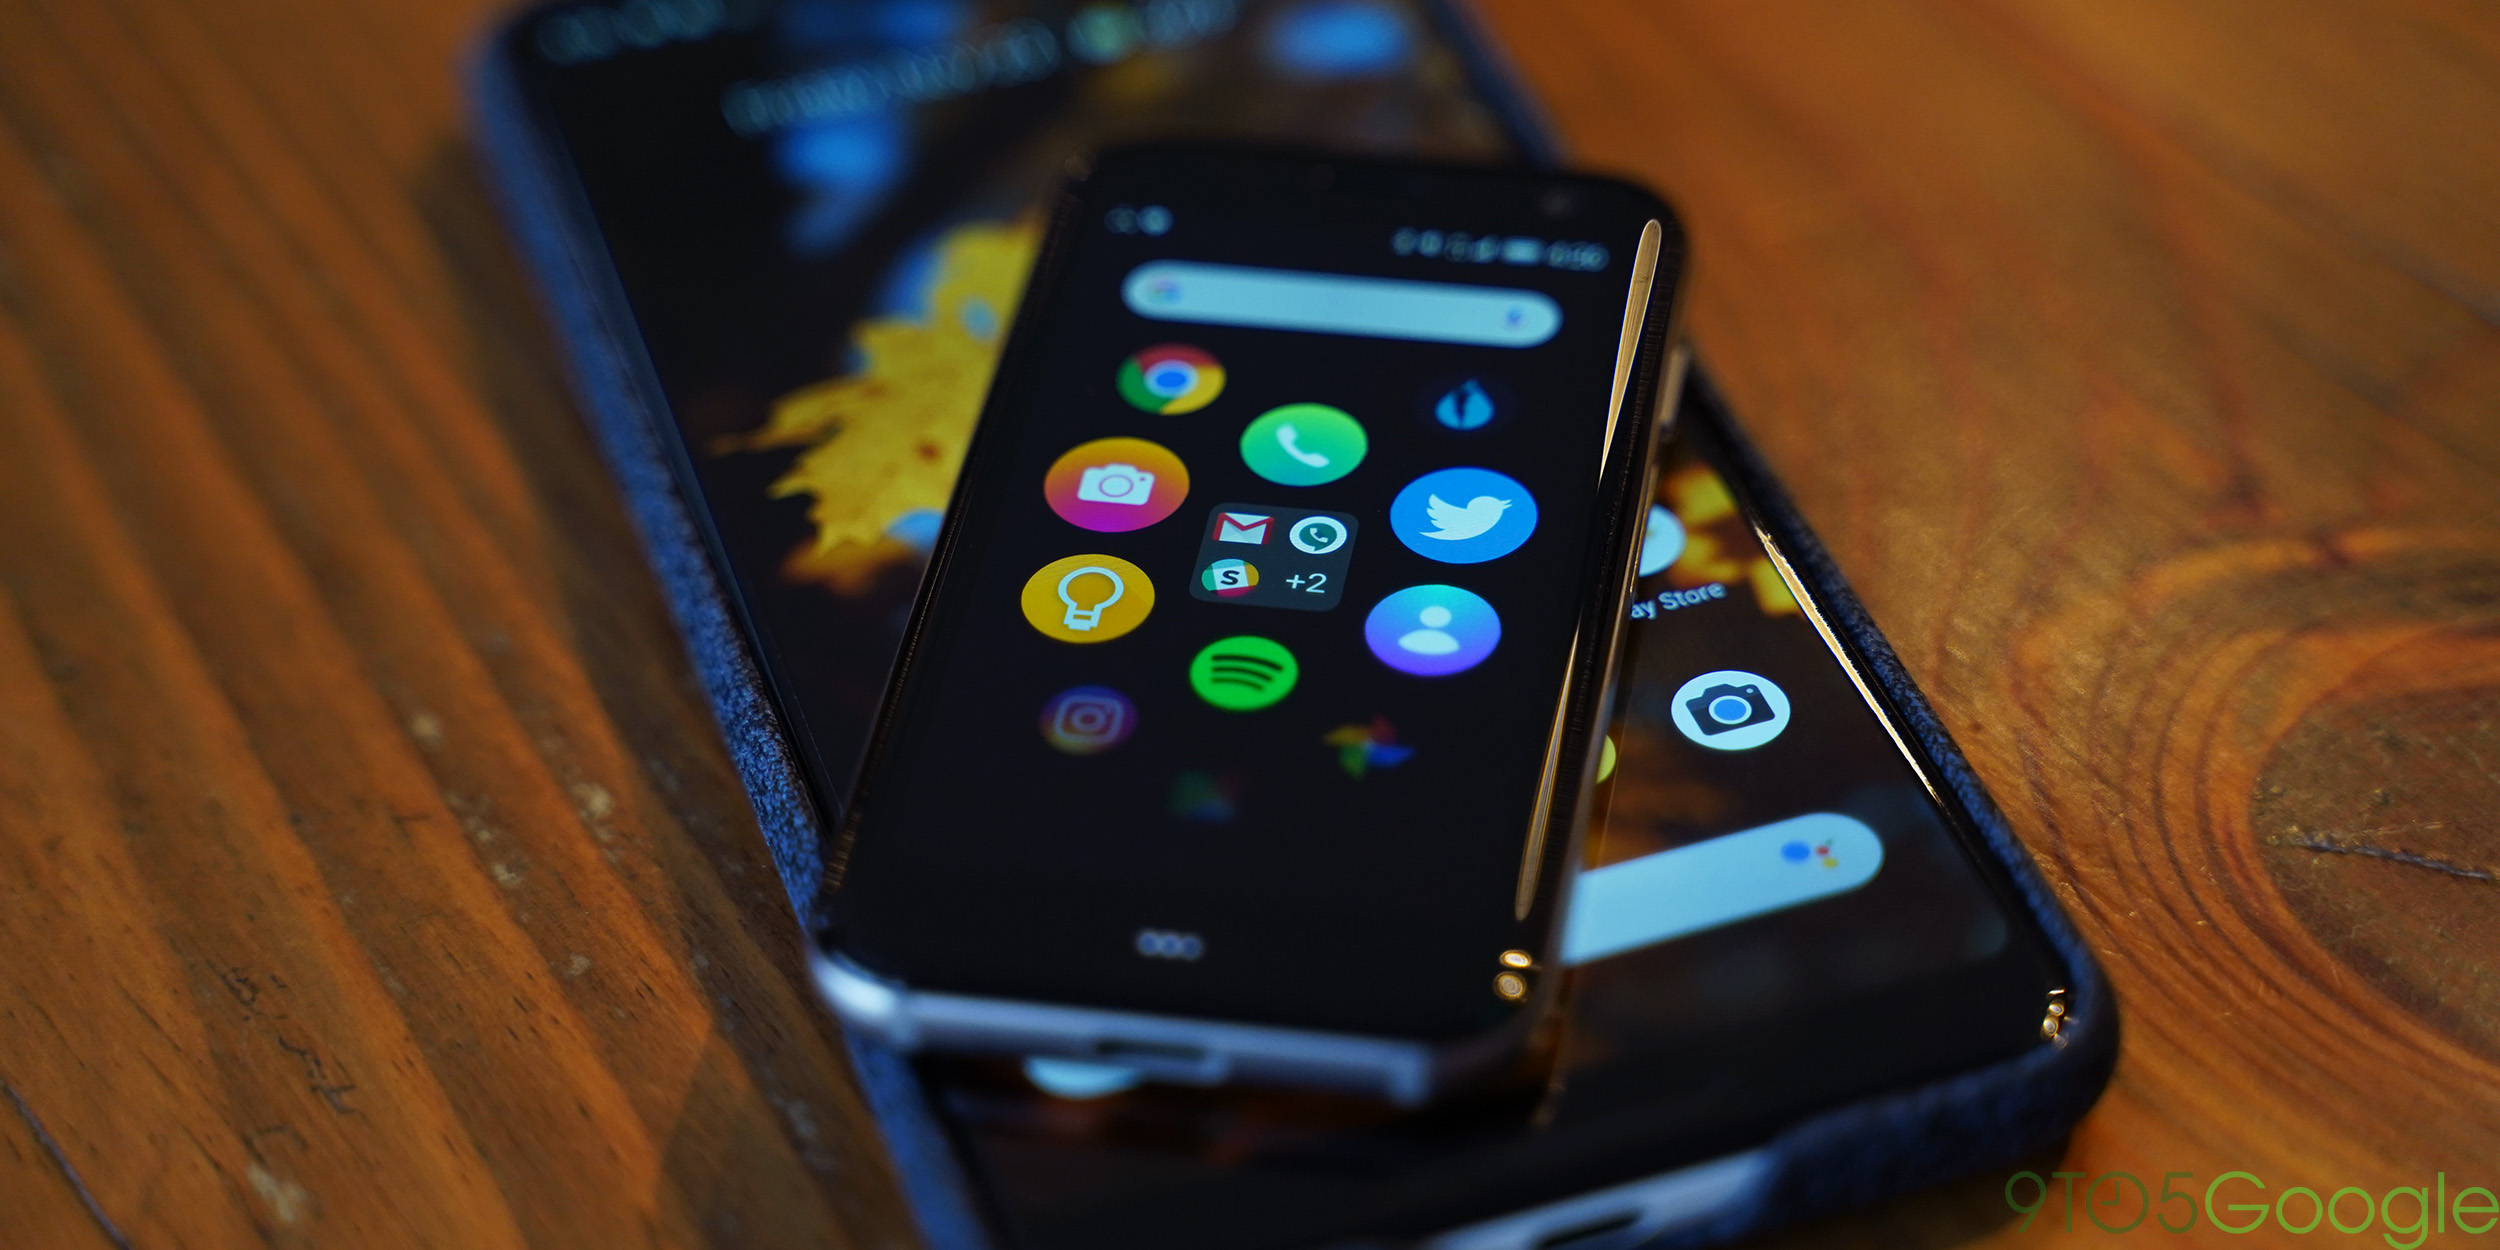 Listen To Text Messages >> The Palm Phone is more fun as a normal phone - 9to5Google